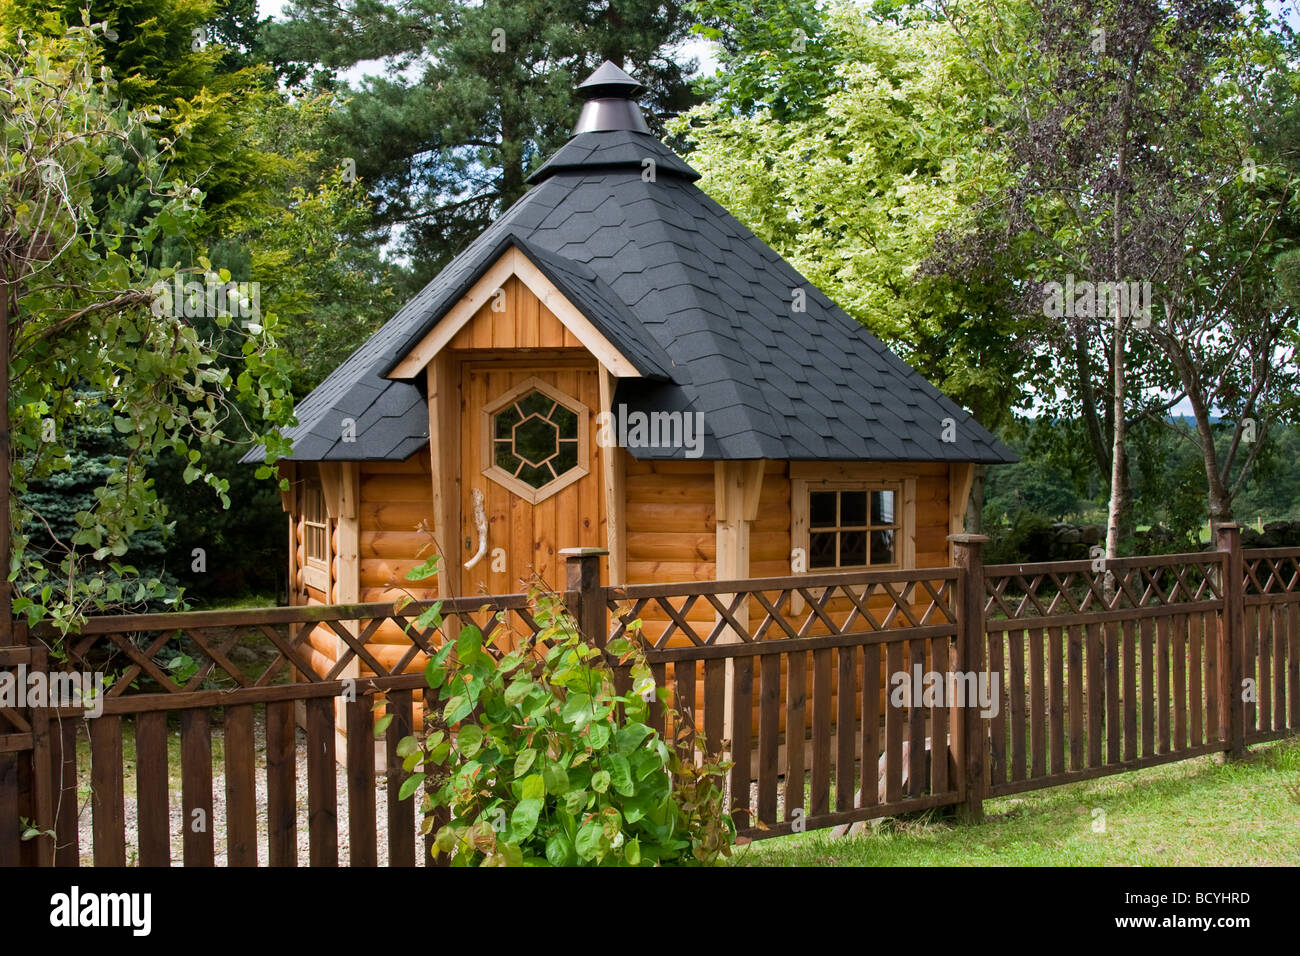 hexagonal wooden felted garden shed at deeside log cabins aberdeenshire scotland uk